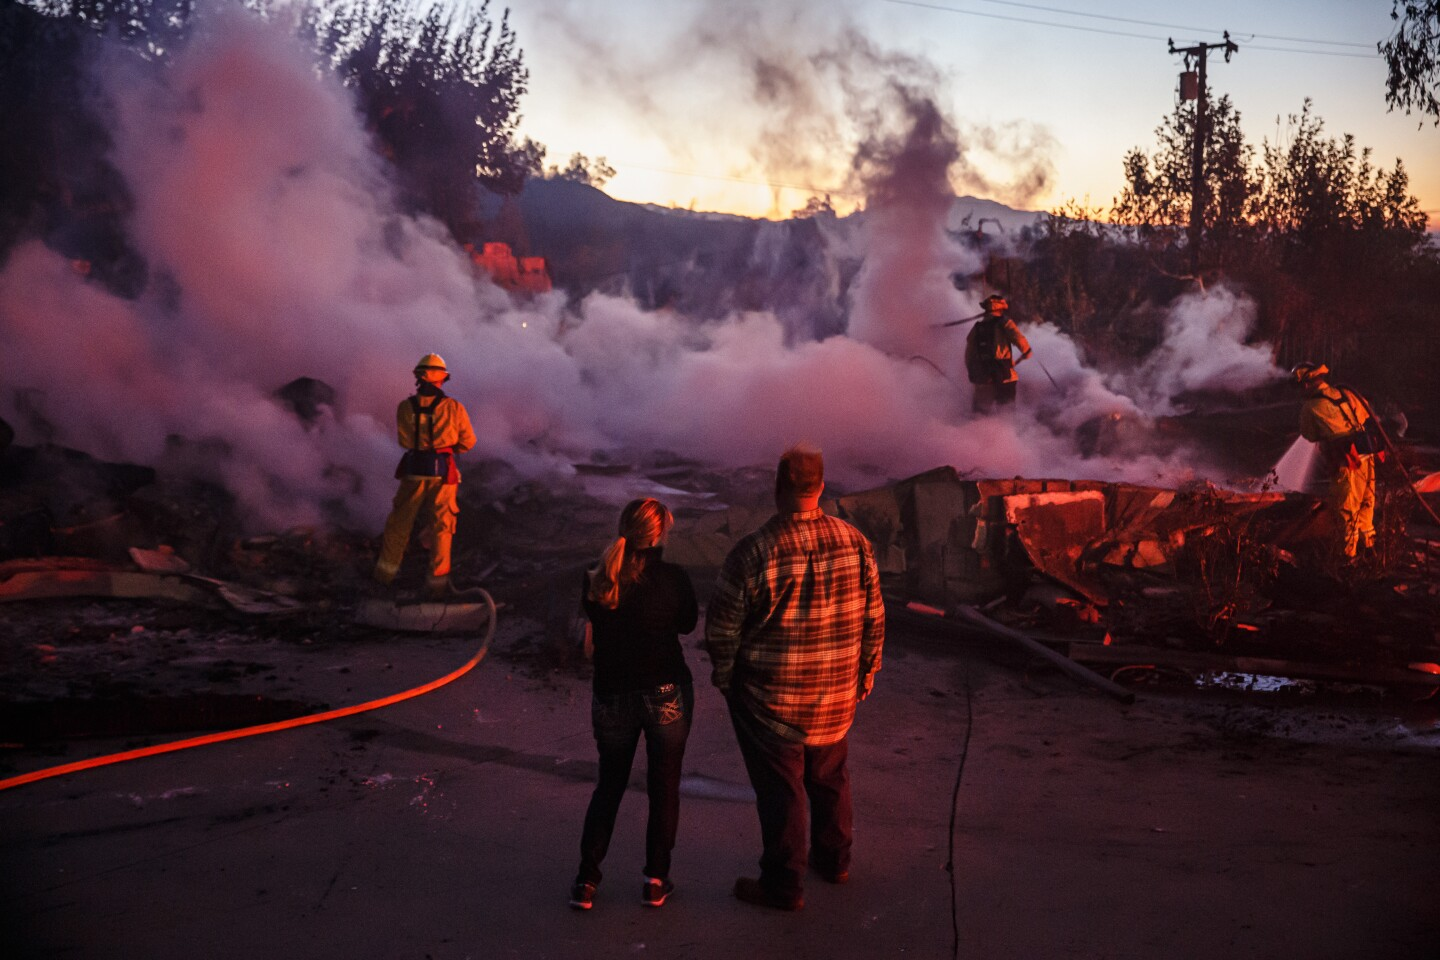 SAN BERNARDINO, CALIF. -- THURSDAY, OCTOBER 31, 2019: Family members look on as firefighters mop up a burned down home destroyed by the Hillside Fire in San Bernardino, Calif., on Oct. 31, 2019. (Marcus Yam / Los Angeles Times)